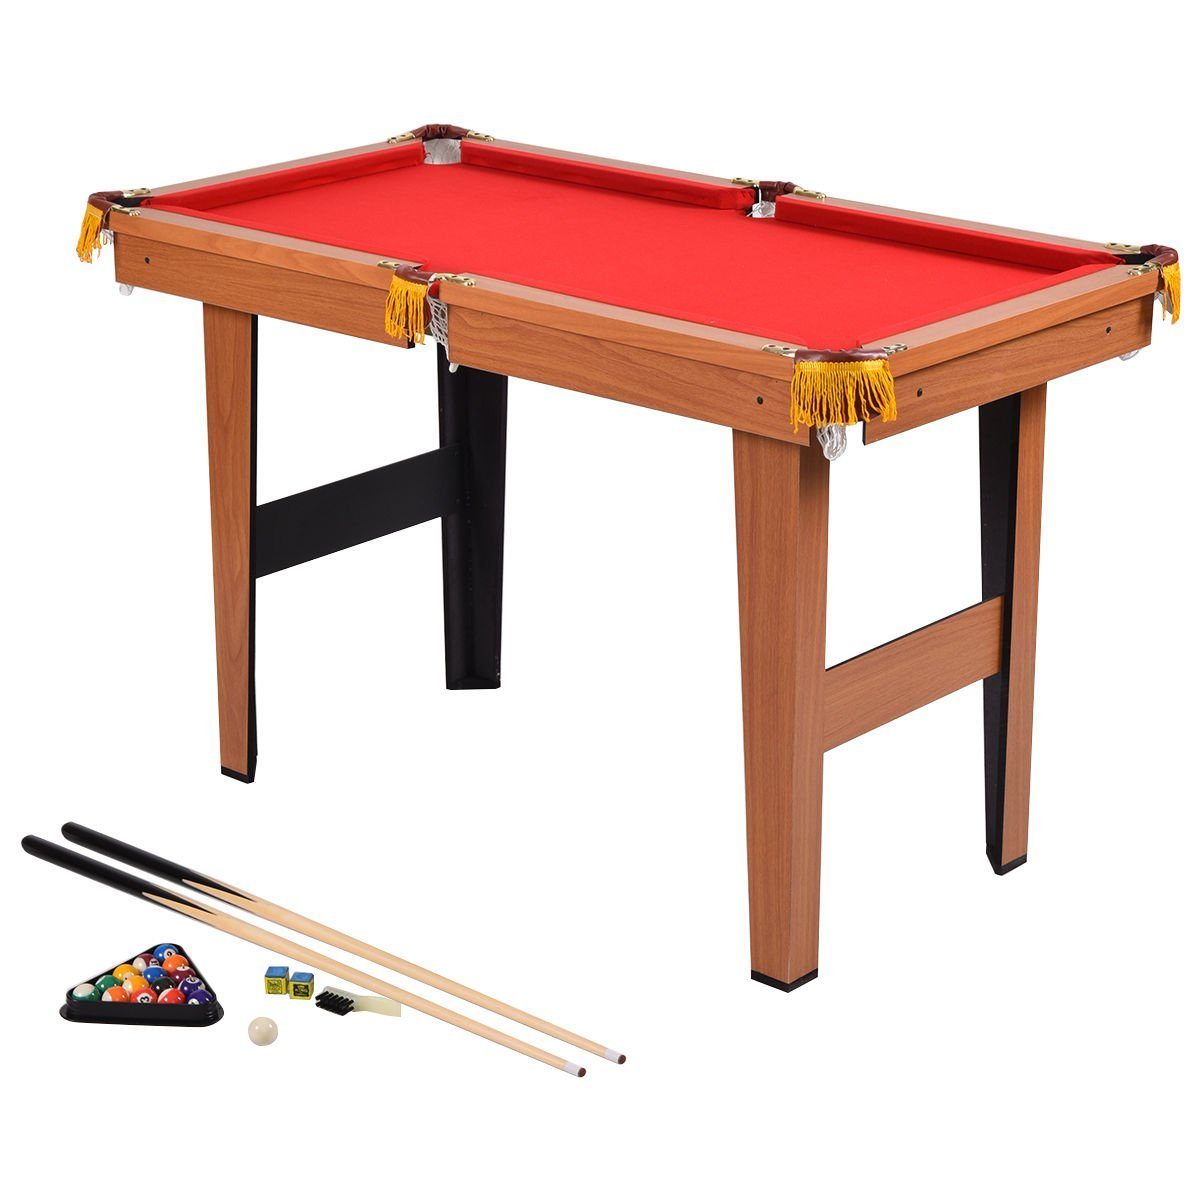 Mini Pool Tables Sale THE BILLIARDS GUY - Pool table description